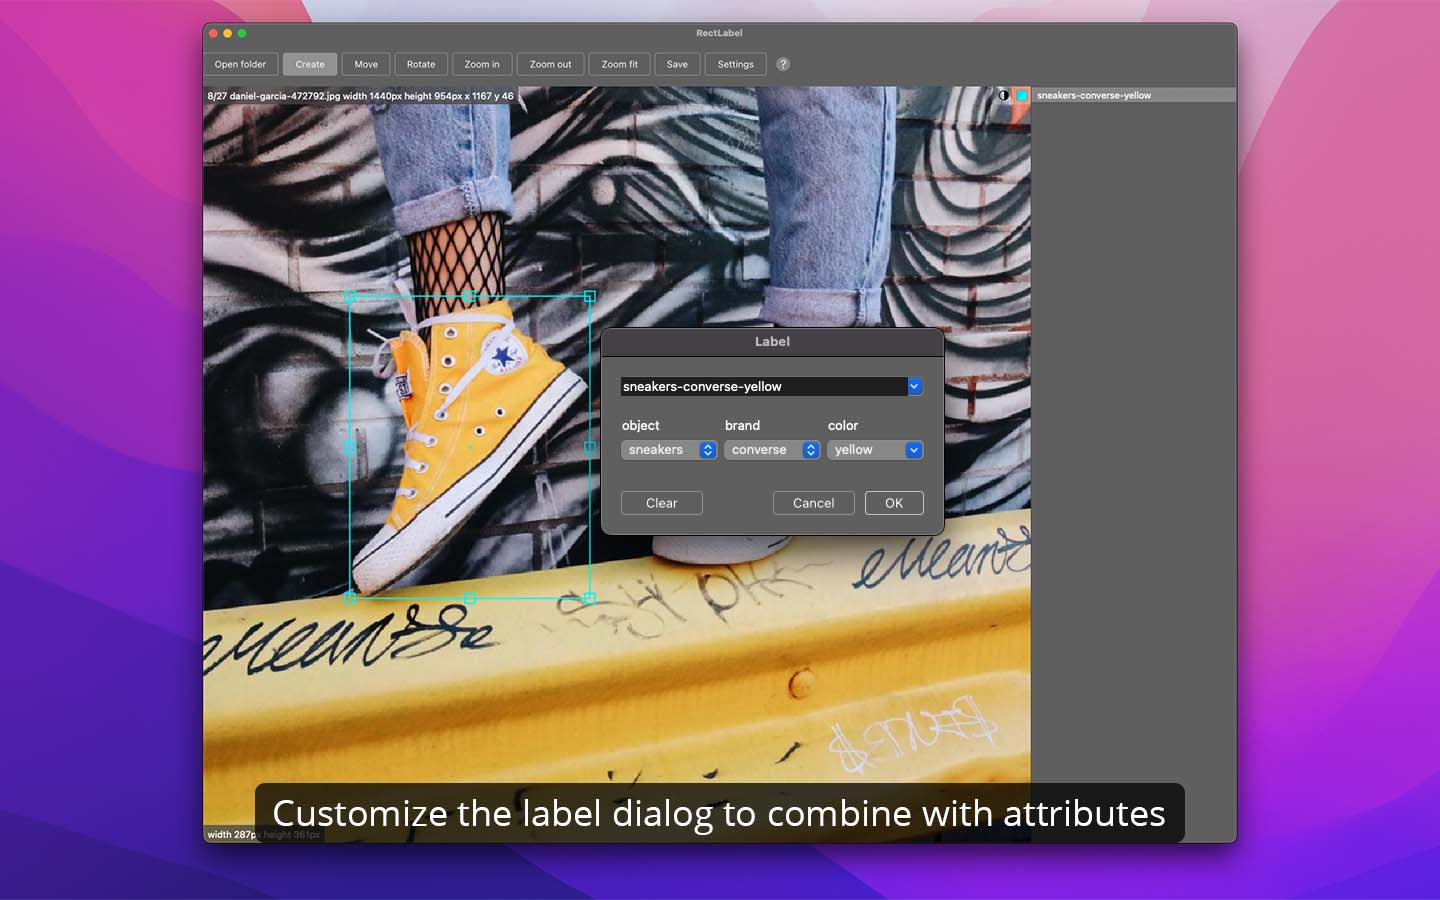 Customize the label dialog to combine with attributes